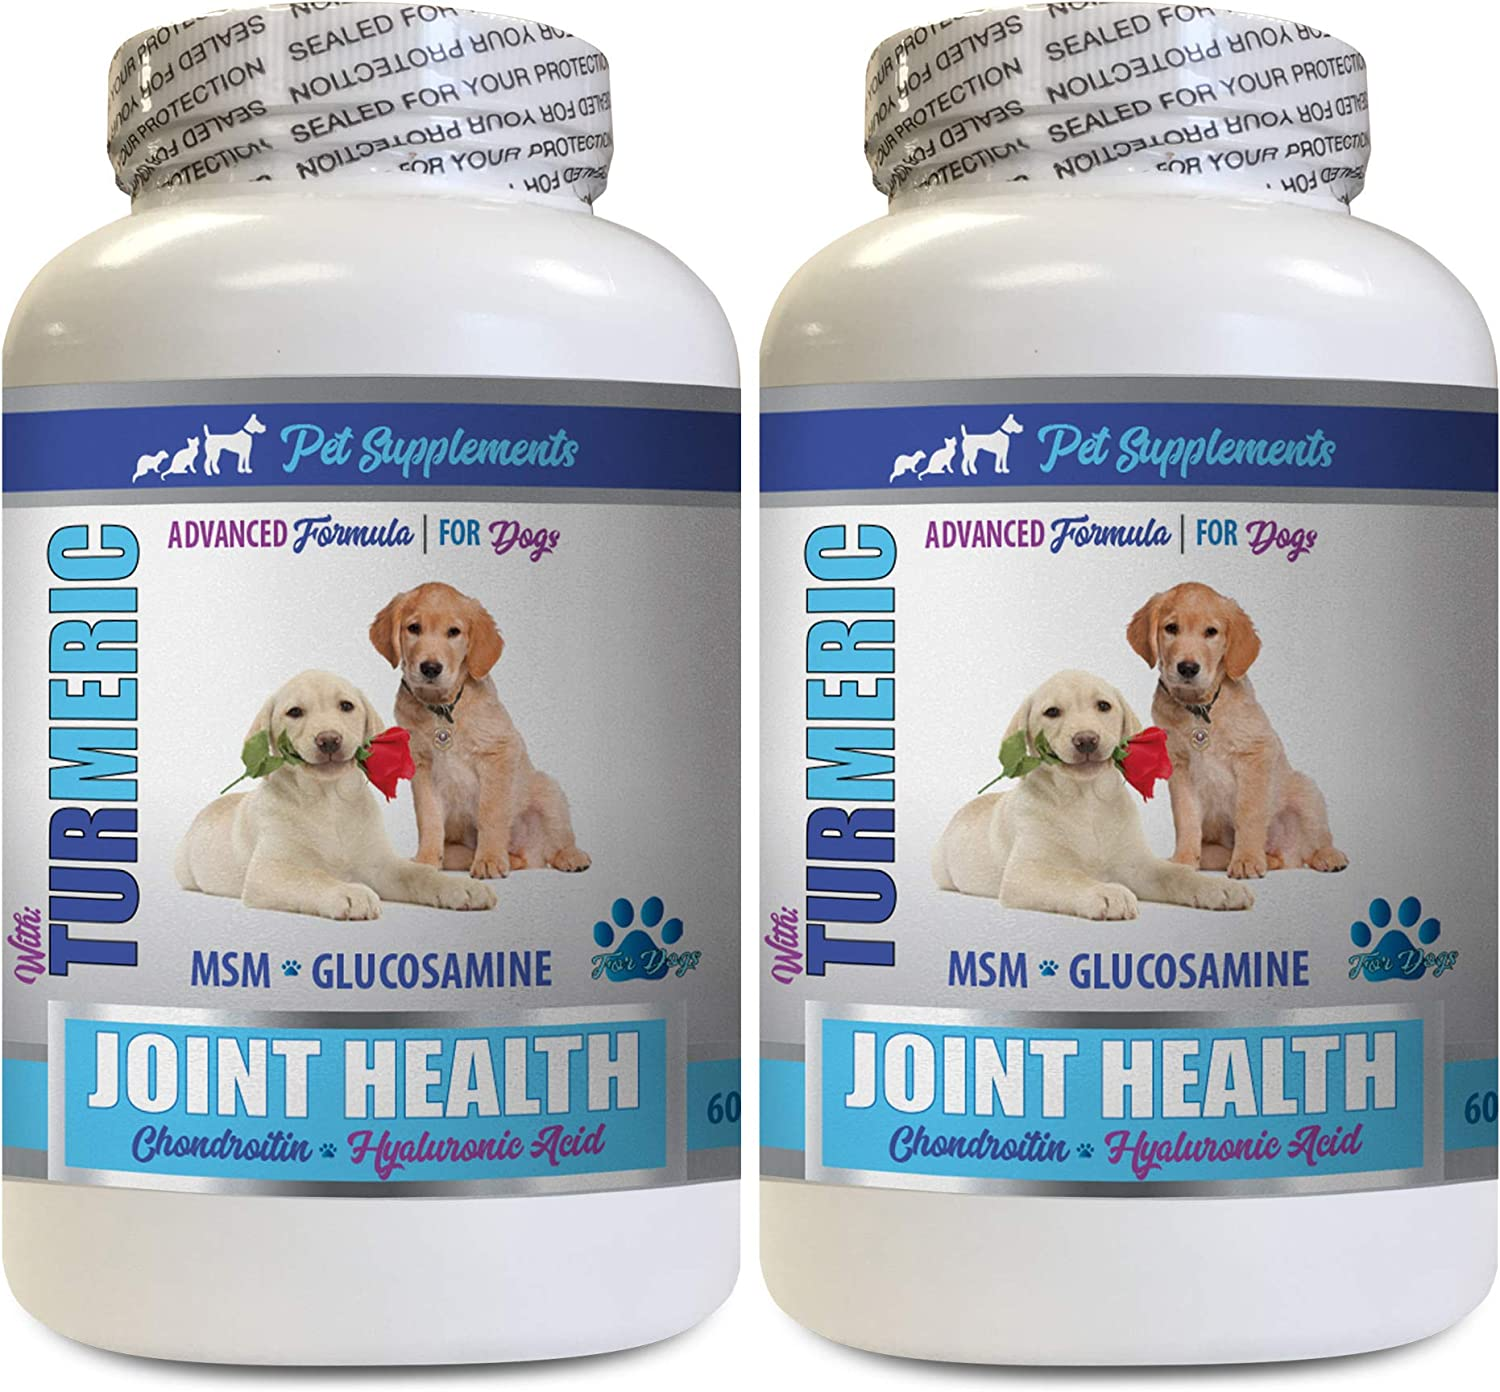 PET SUPPLEMENTS Dog Joint Hip - Health Max 83% Trust OFF Turmeric Supplement